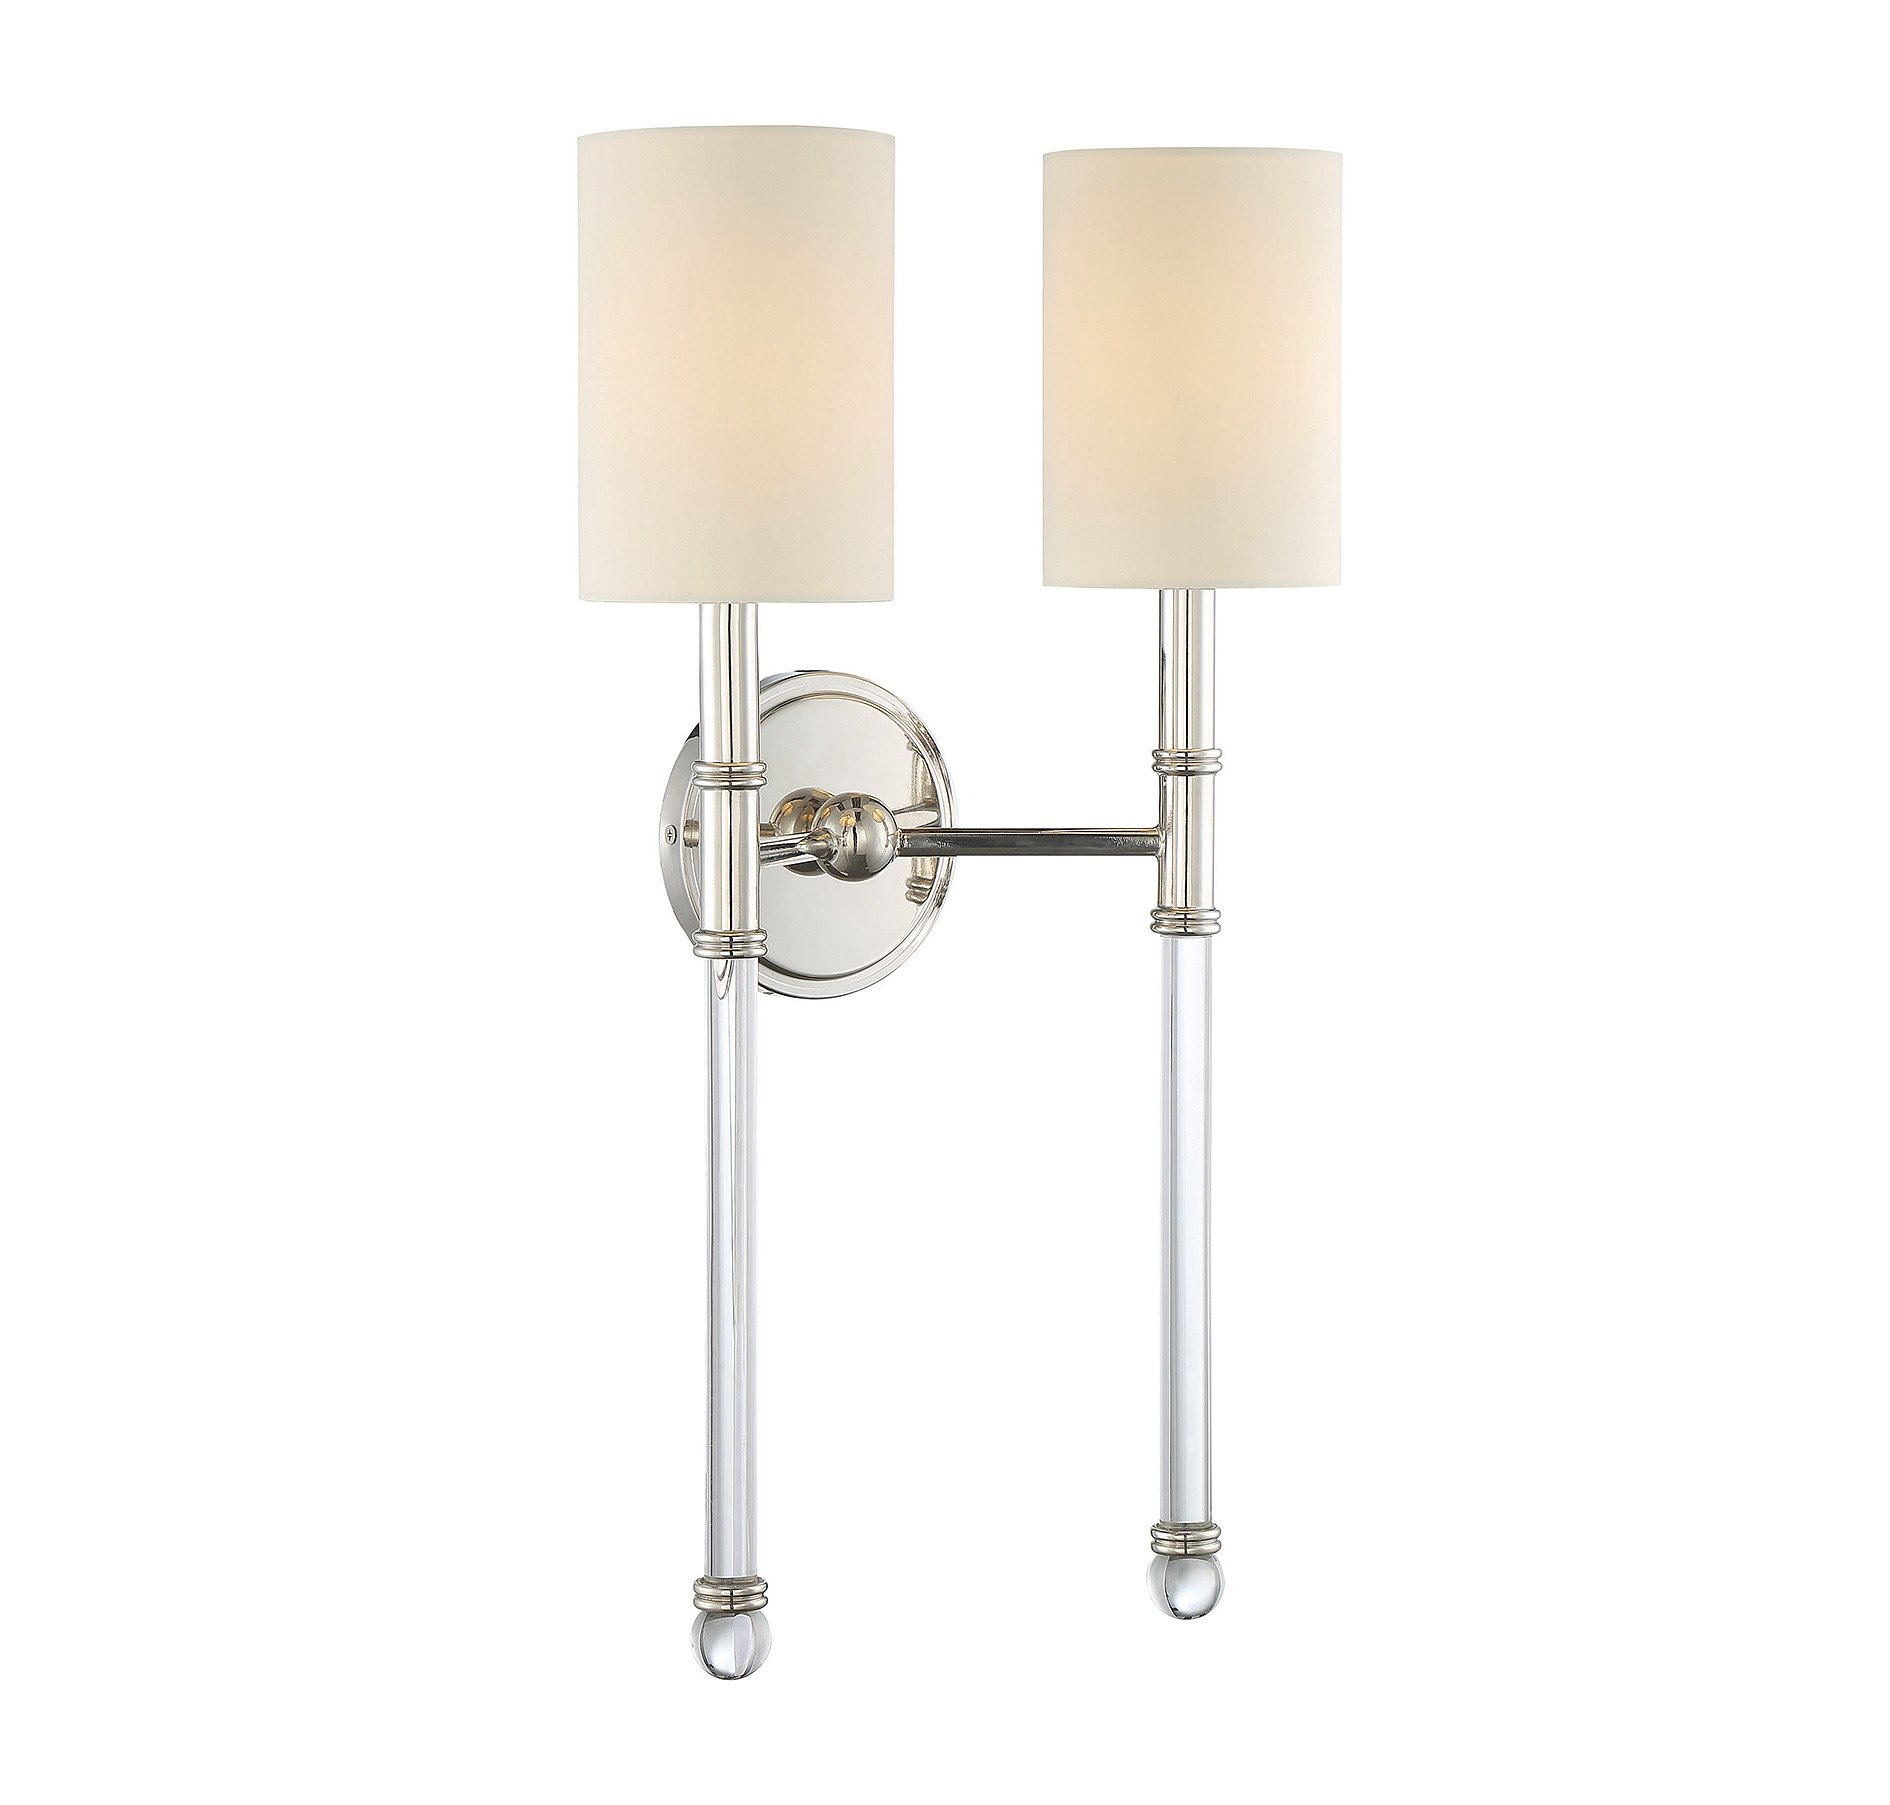 Savoy House 9-103-2-109 Fremont 2-Light Sconce in Polished Nickel